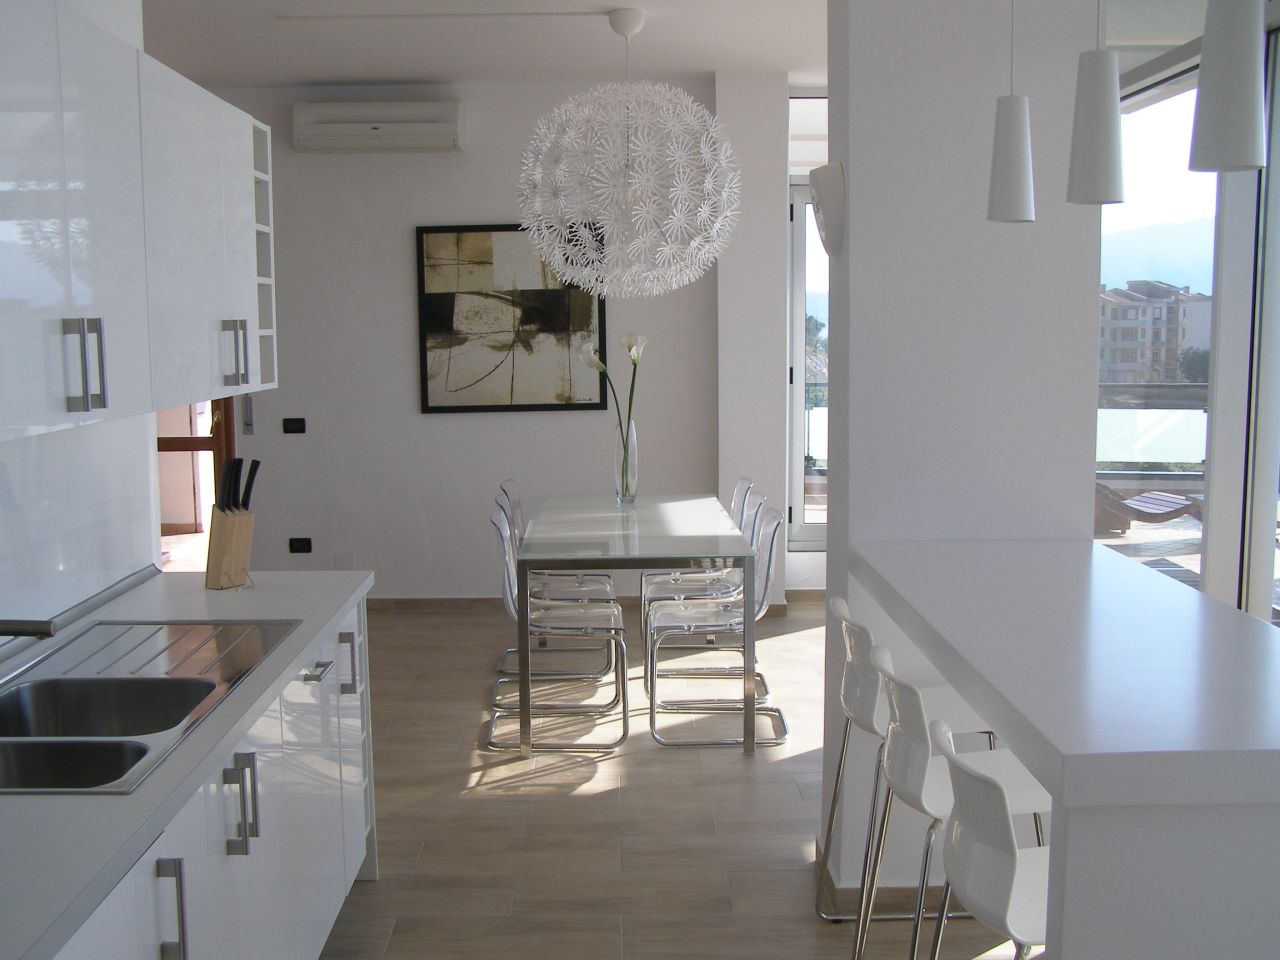 Luxury Apartment for Rent in Vlora city. Albania Holiday Apartment for Rent